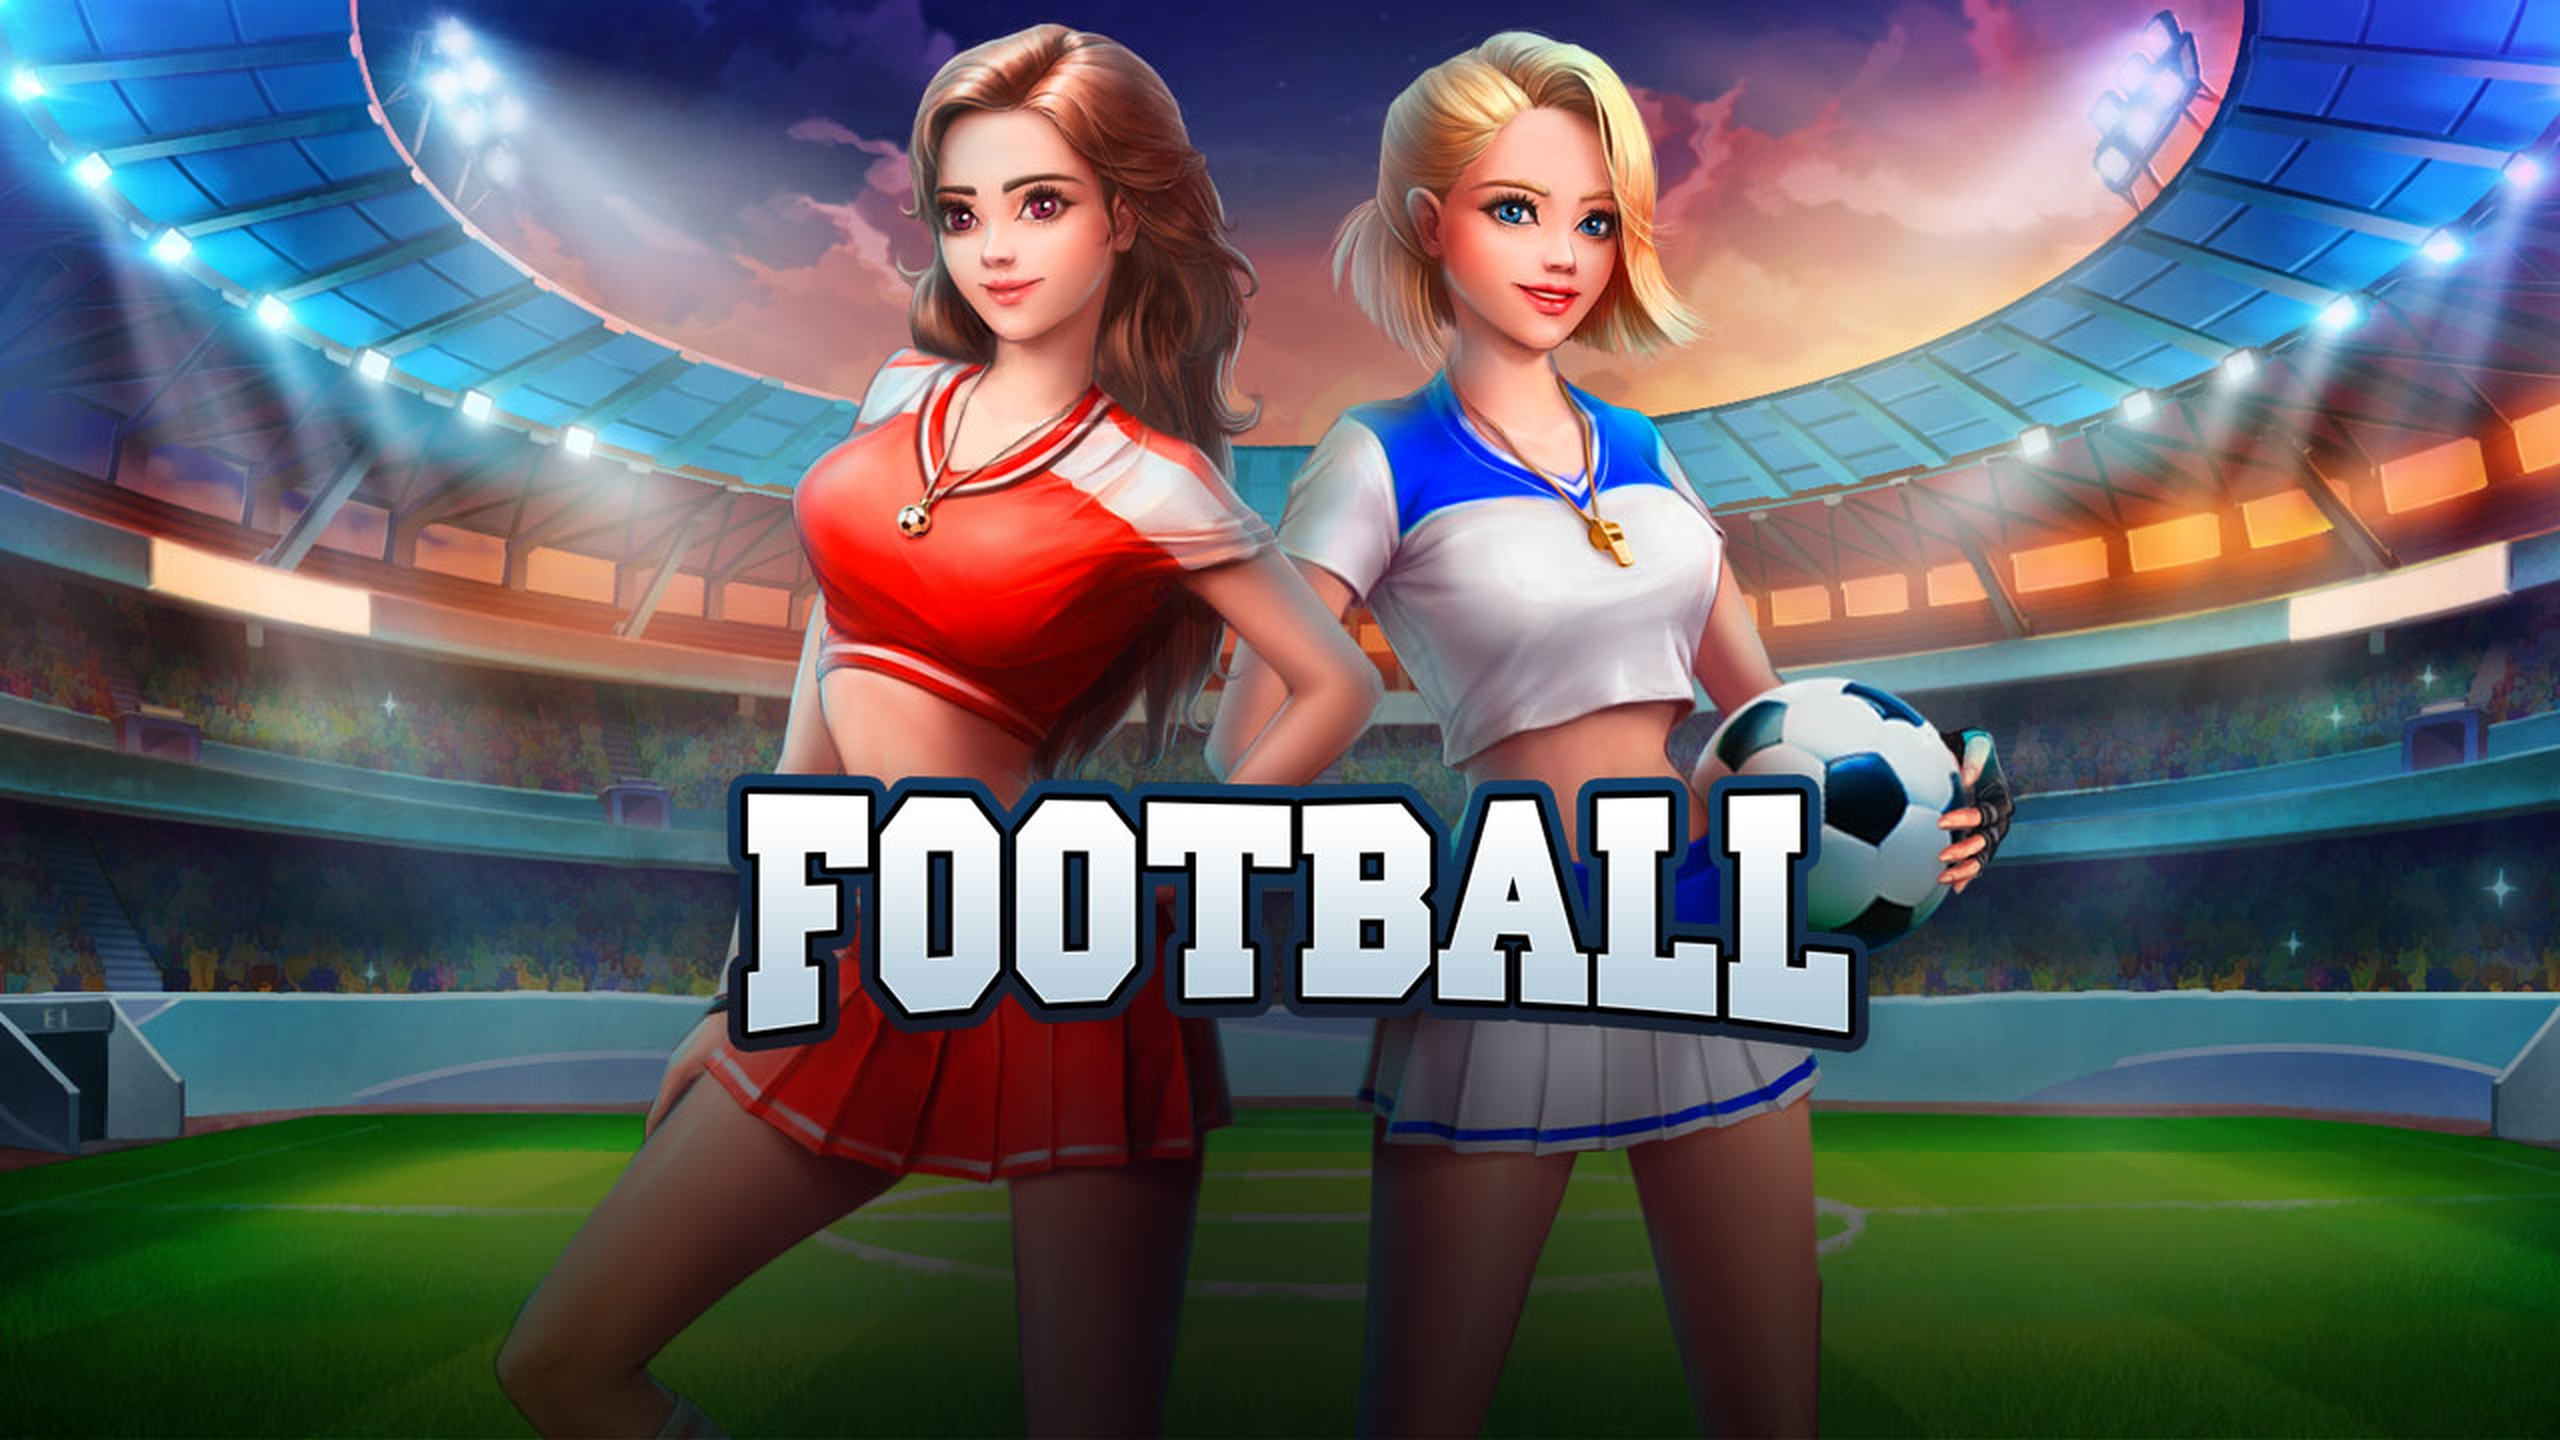 The Football (Evoplay) Online Slot Demo Game by Evoplay Entertainment